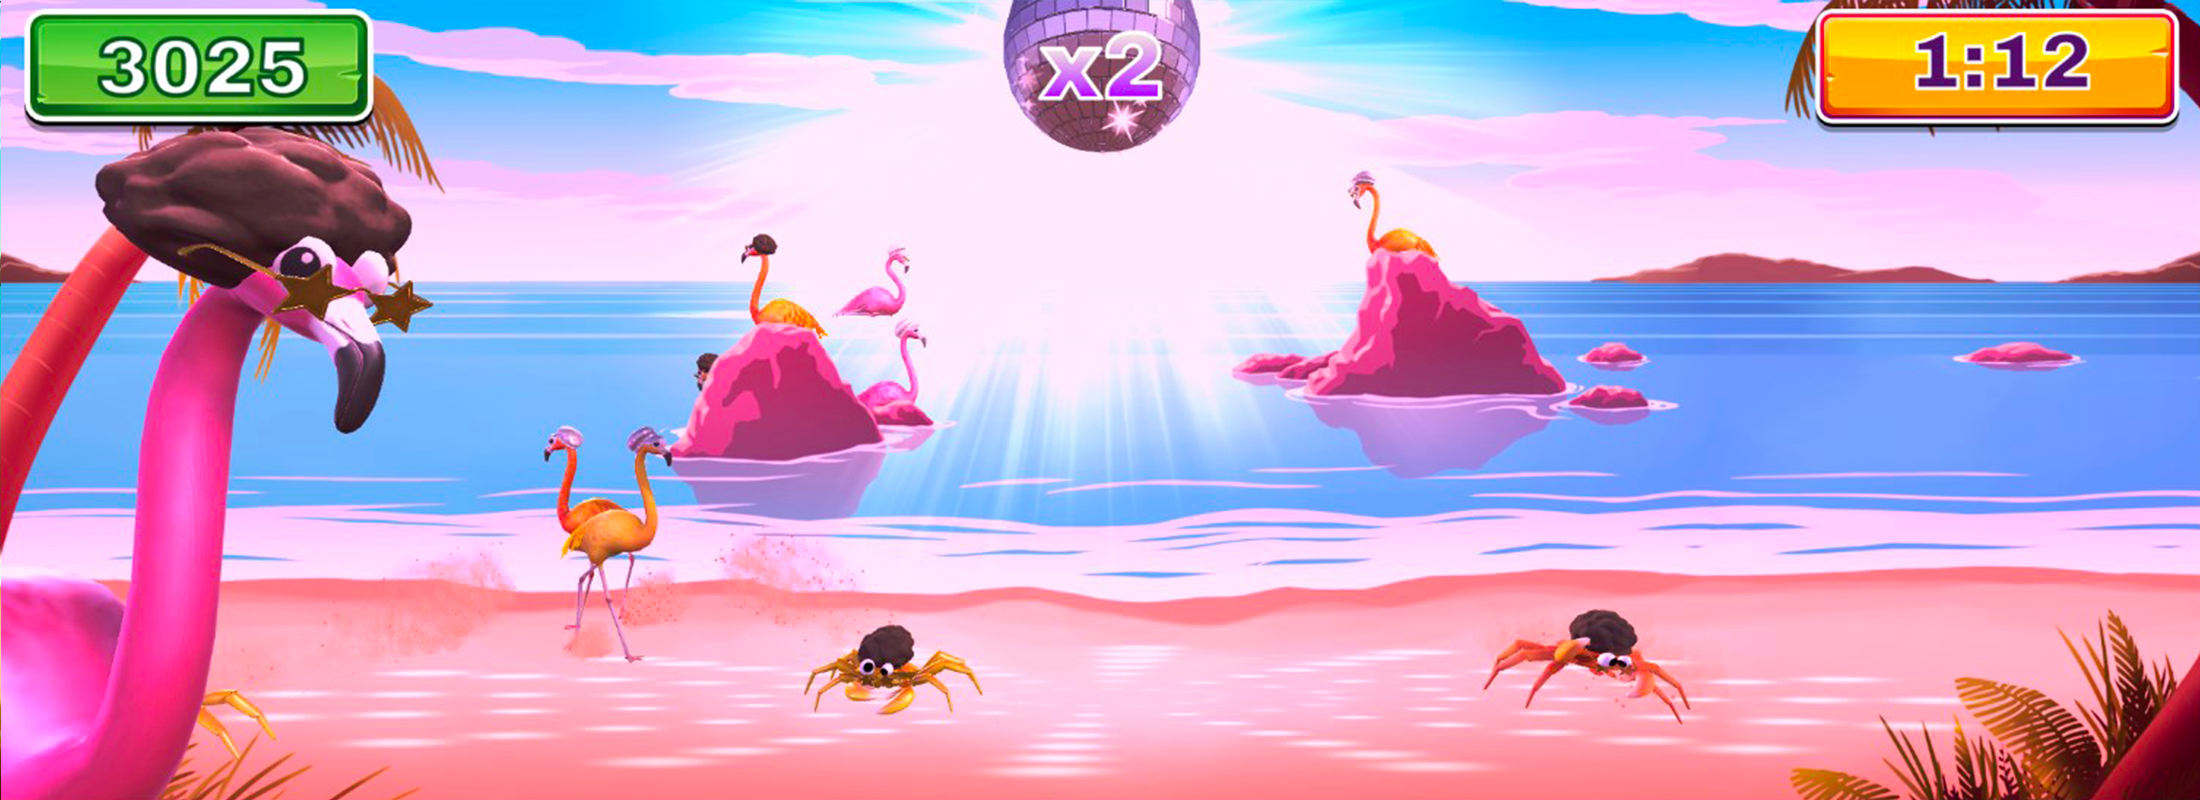 Disco Flamingo gameplay picture 2